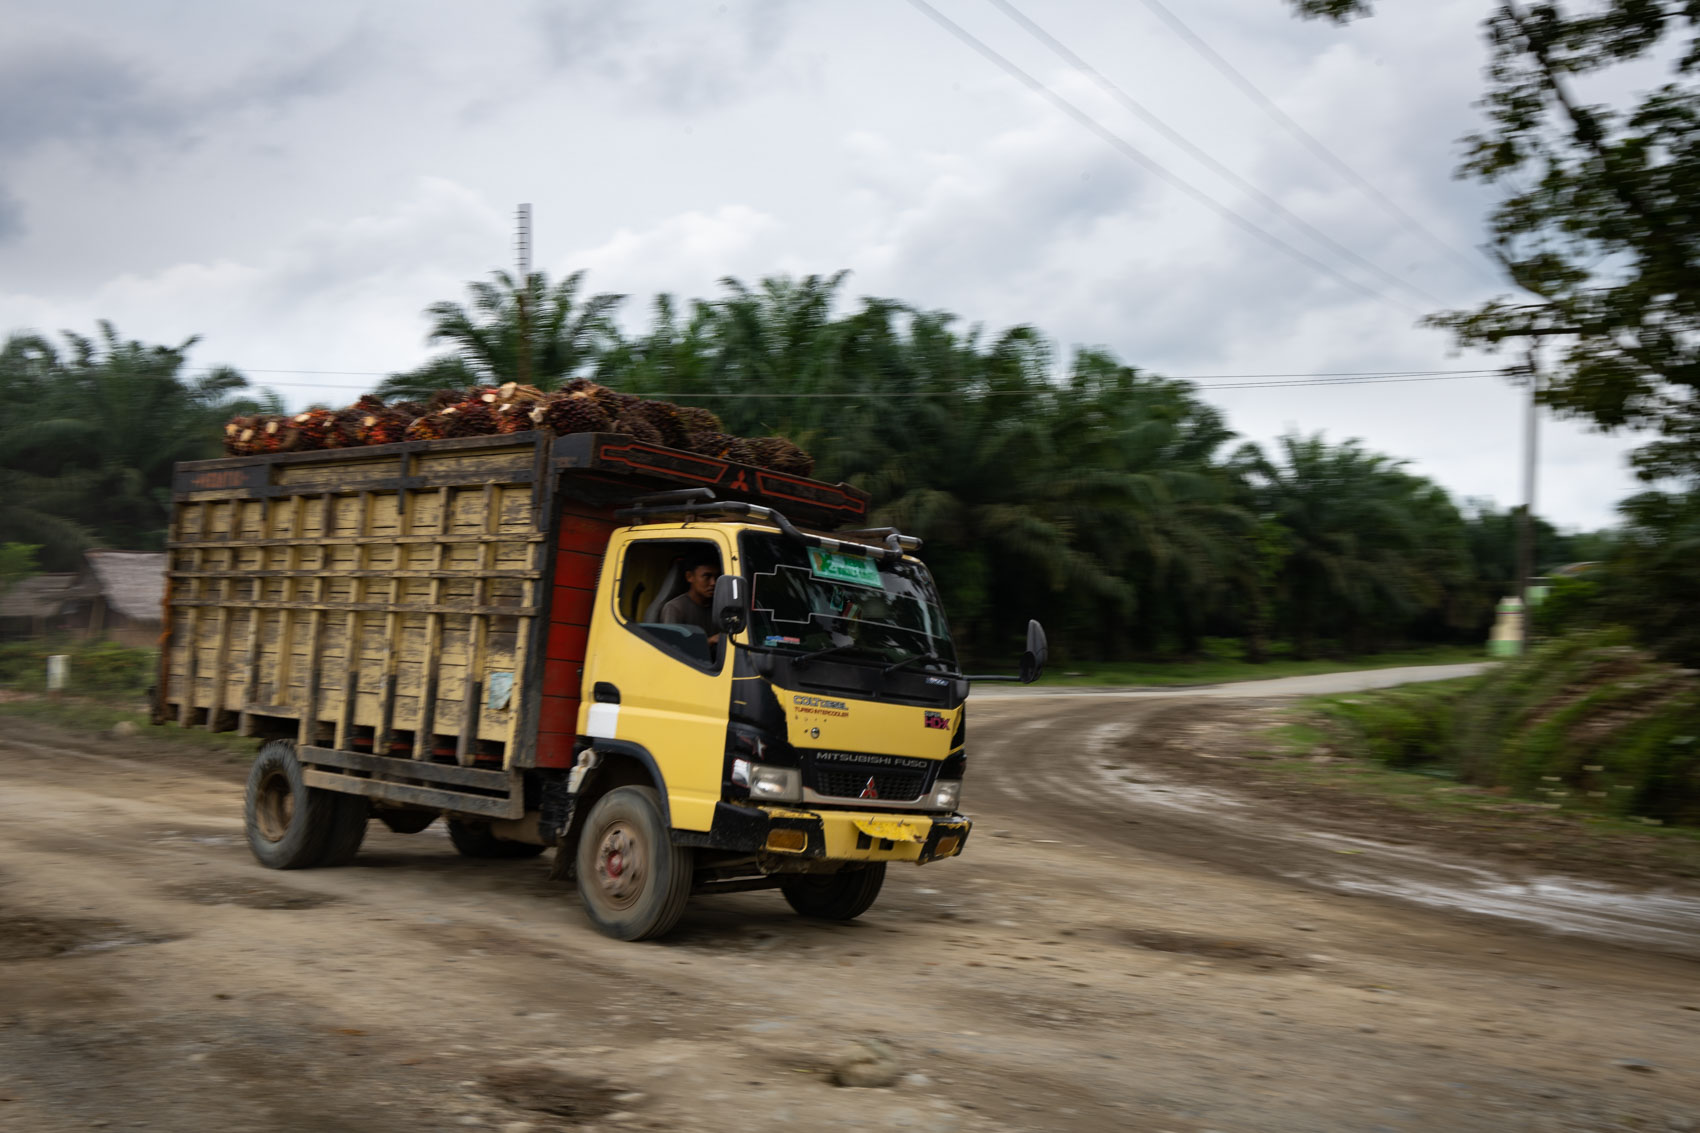 A truck filled with palm oil drives through a dirt road in Northern Sumatra, Indonesia